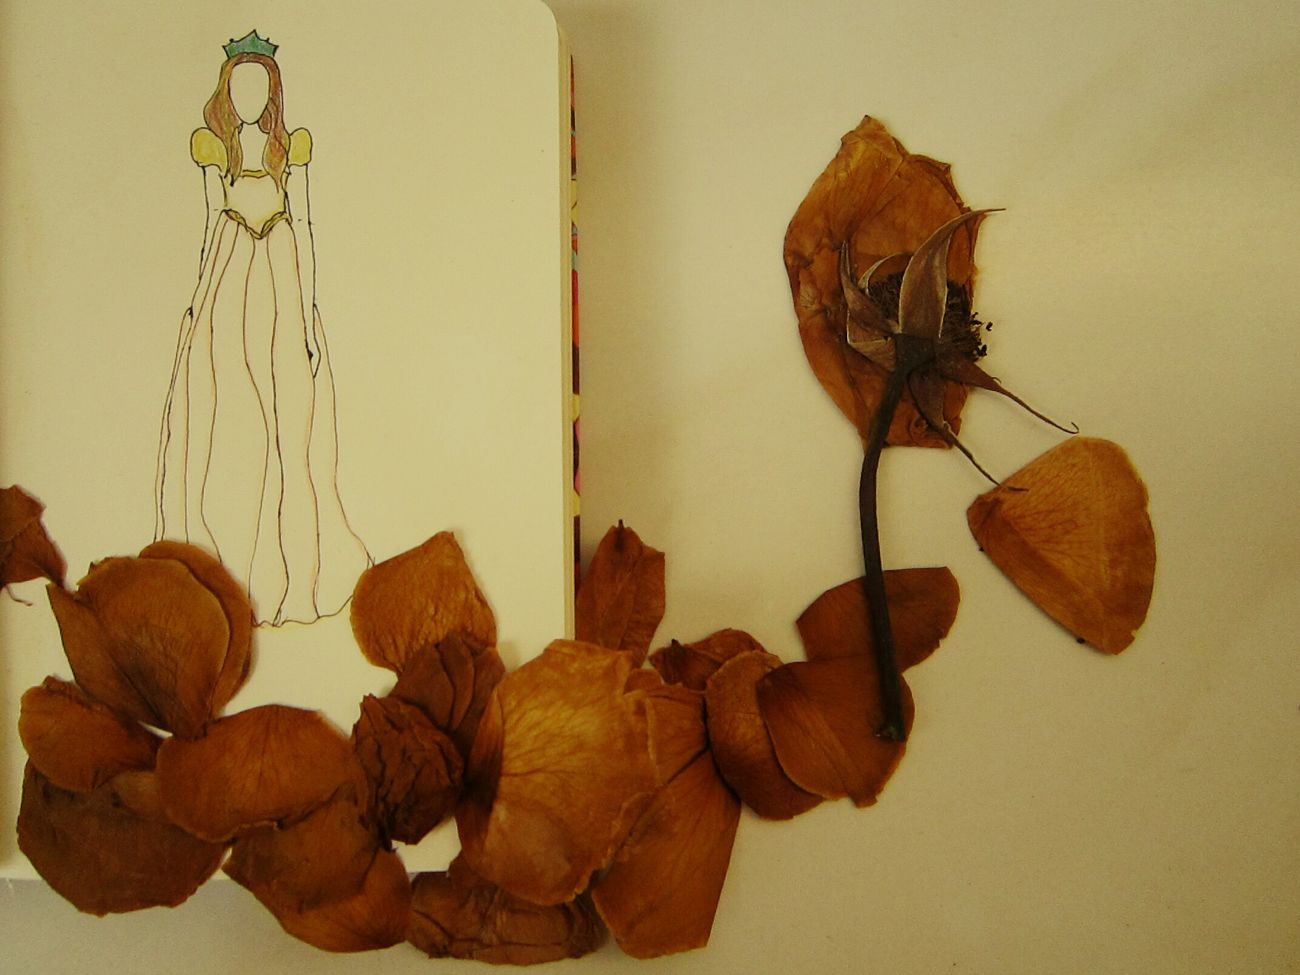 She considered herself a dried withered rose. A rose that has no fragrant. A rose that has no use. But she overlooked something important fact. She is an art. Sketch Art Roses Rose Petals Dried Roses Dried Rose Sketch Pressed Flowers Vintage Style Brown Solitude Moleskine Moleskineart Moleskindrawing